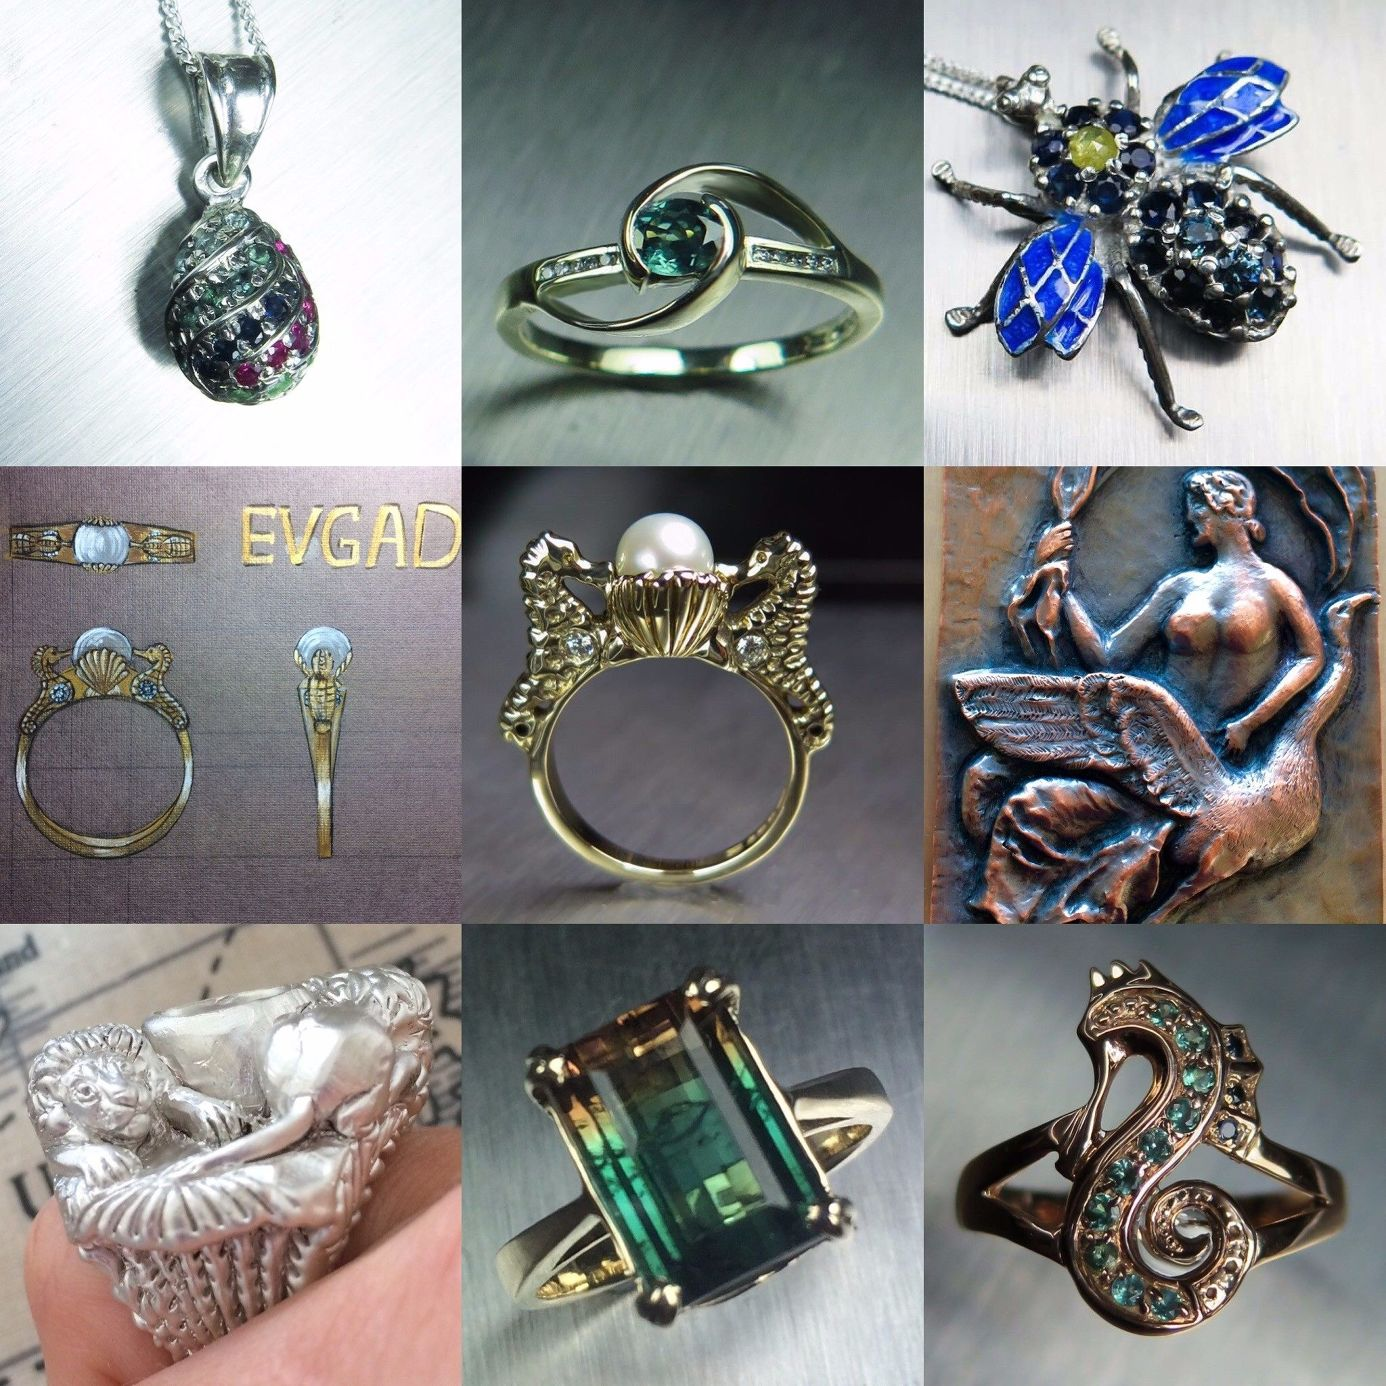 VOTE FOR EVGAD Jewellery